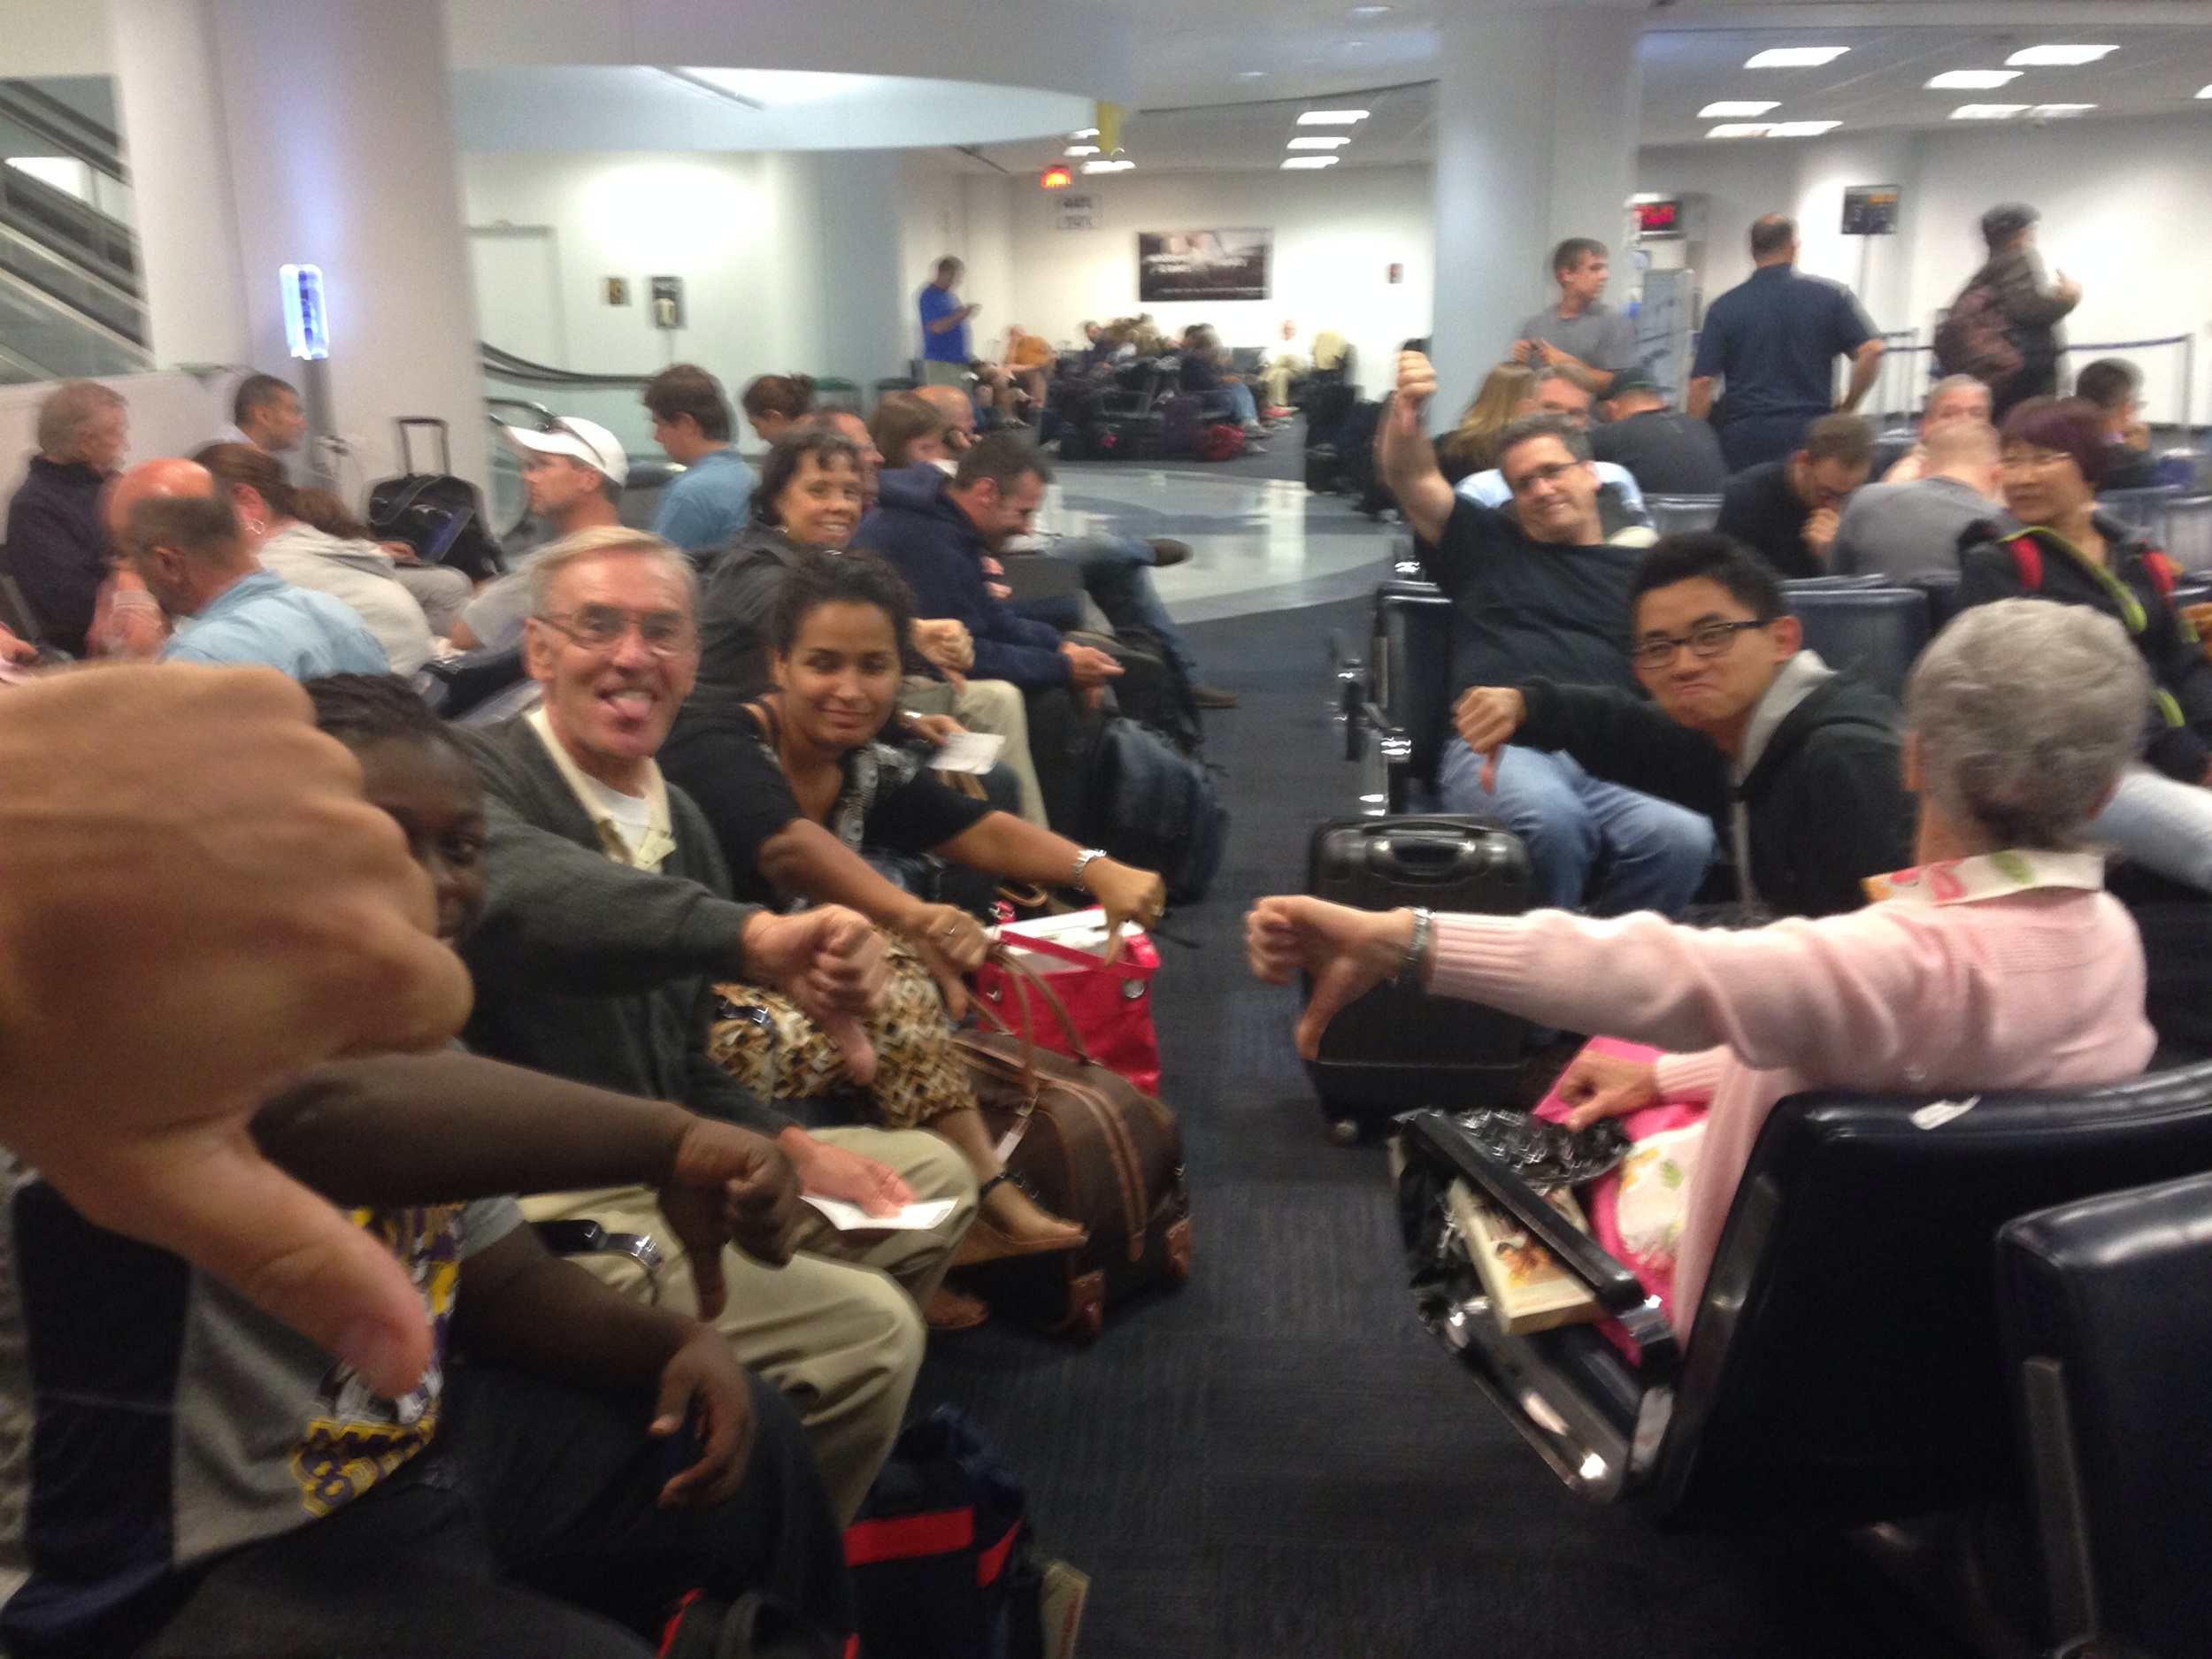 How customers feel about United Airlines - pic from Sunday 6/15 United flight Newark to Providence